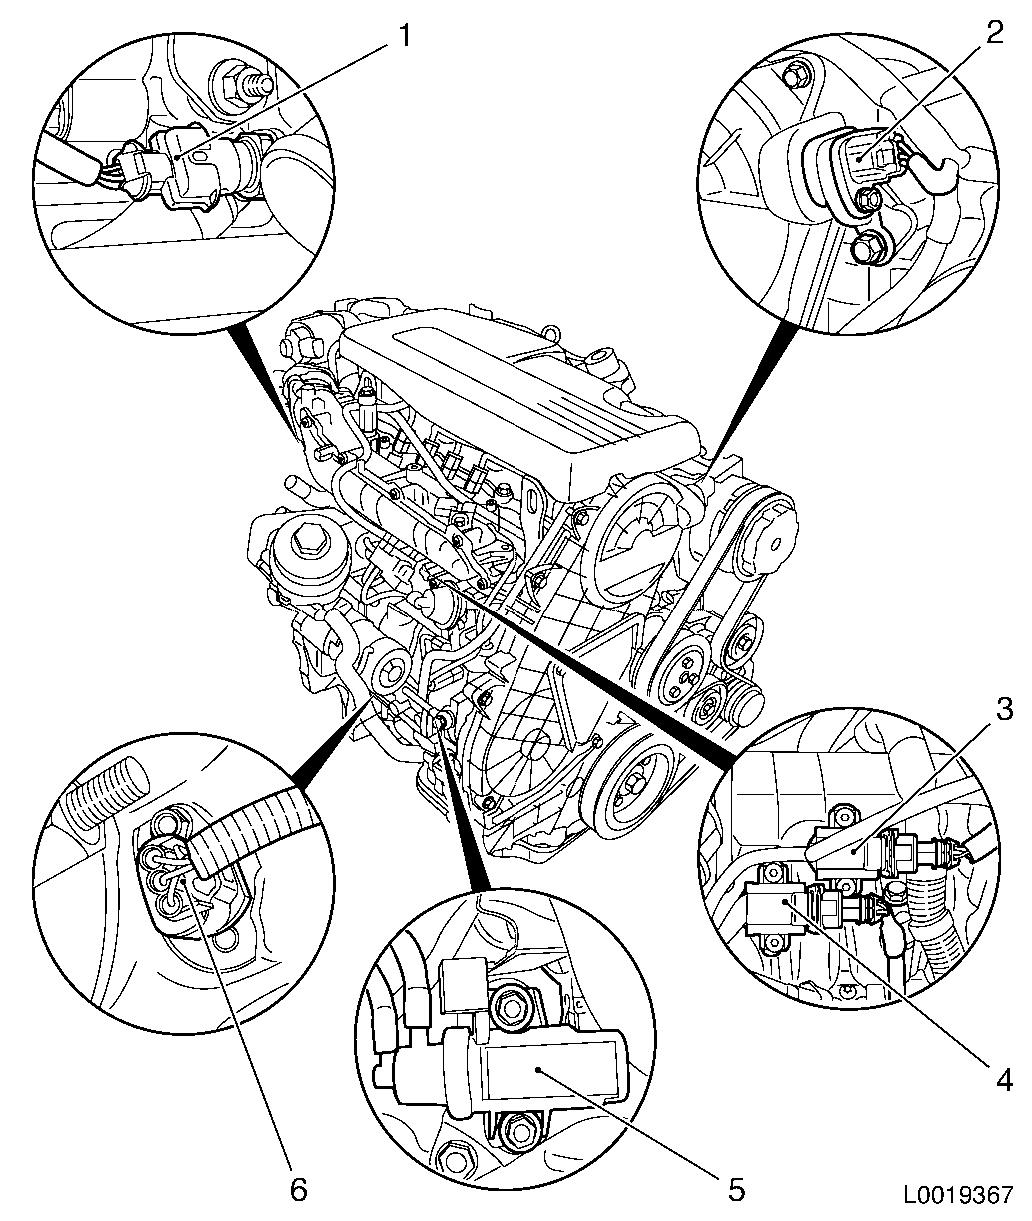 Vauxhall Workshop Manuals Gt Astra H Gt J Engine And Engine Aggregates Gt Fuel Injection Systems